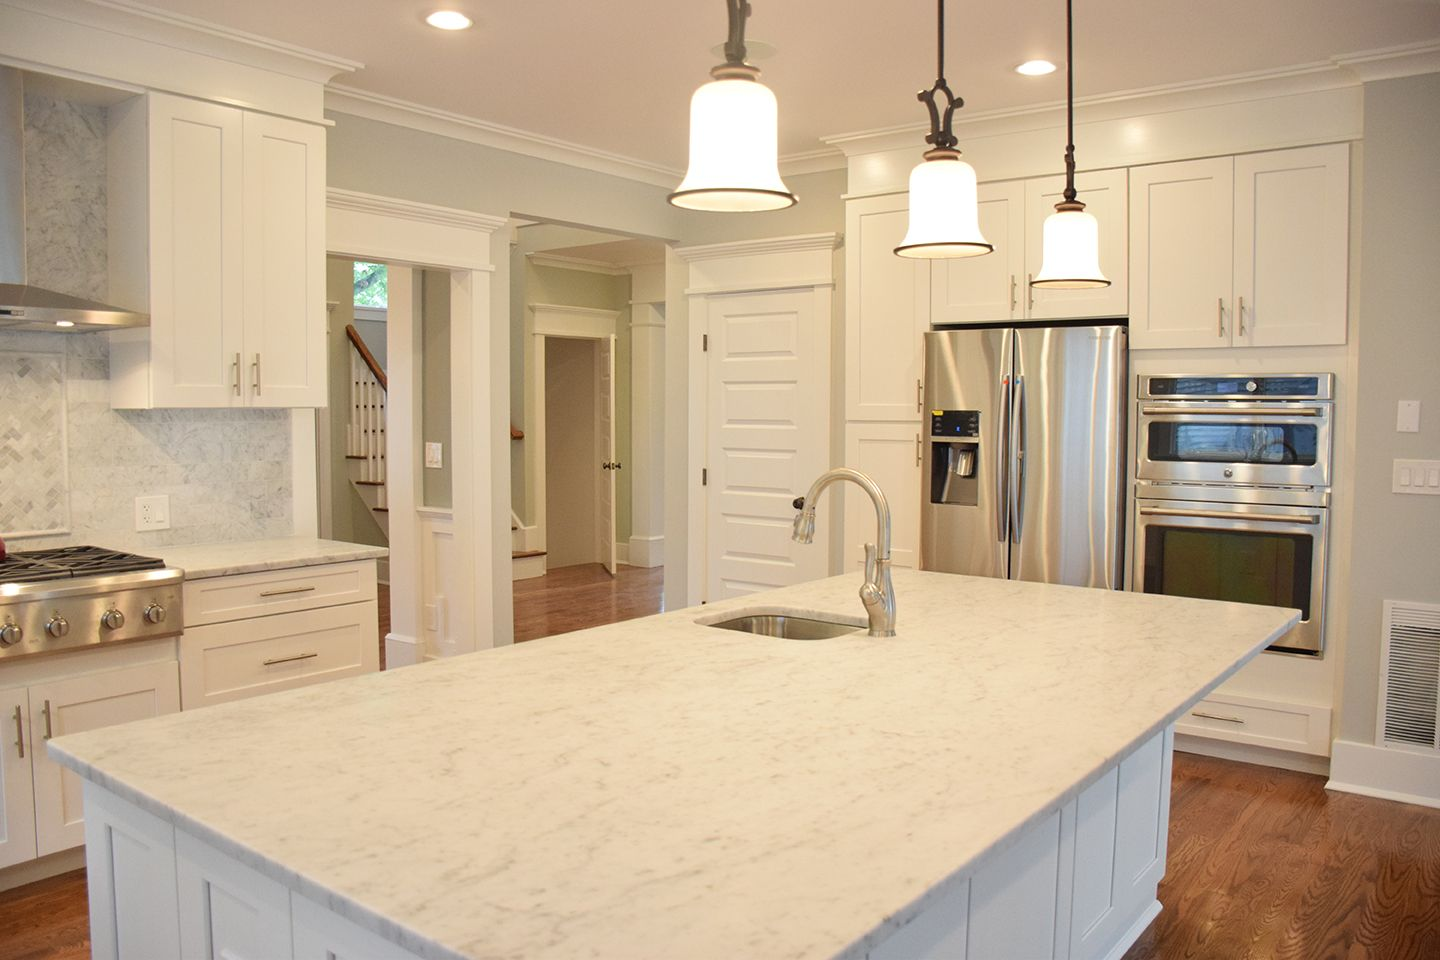 Buy online: //www.kabinetking.com/waypoint-living-spaces.html ... on cheap kitchen storage solutions, cheap rustic kitchen, cheap kitchen remodel, cheap kitchen makeovers, cheap kitchen storage pantry, cheap kitchen updates, cheap kitchen counters, cheap kitchen installation, cheap kitchen bathroom, cheap kitchen paint ideas, cheap kitchen islands, cheap kitchen renovations, cheap granite kitchen, cheap easy kitchen remodeling, cheap kitchen hood, cheap bedroom sets, cheap kitchen ceilings, cheap kitchen chairs, cheap country kitchens, cheap kitchen vanities,